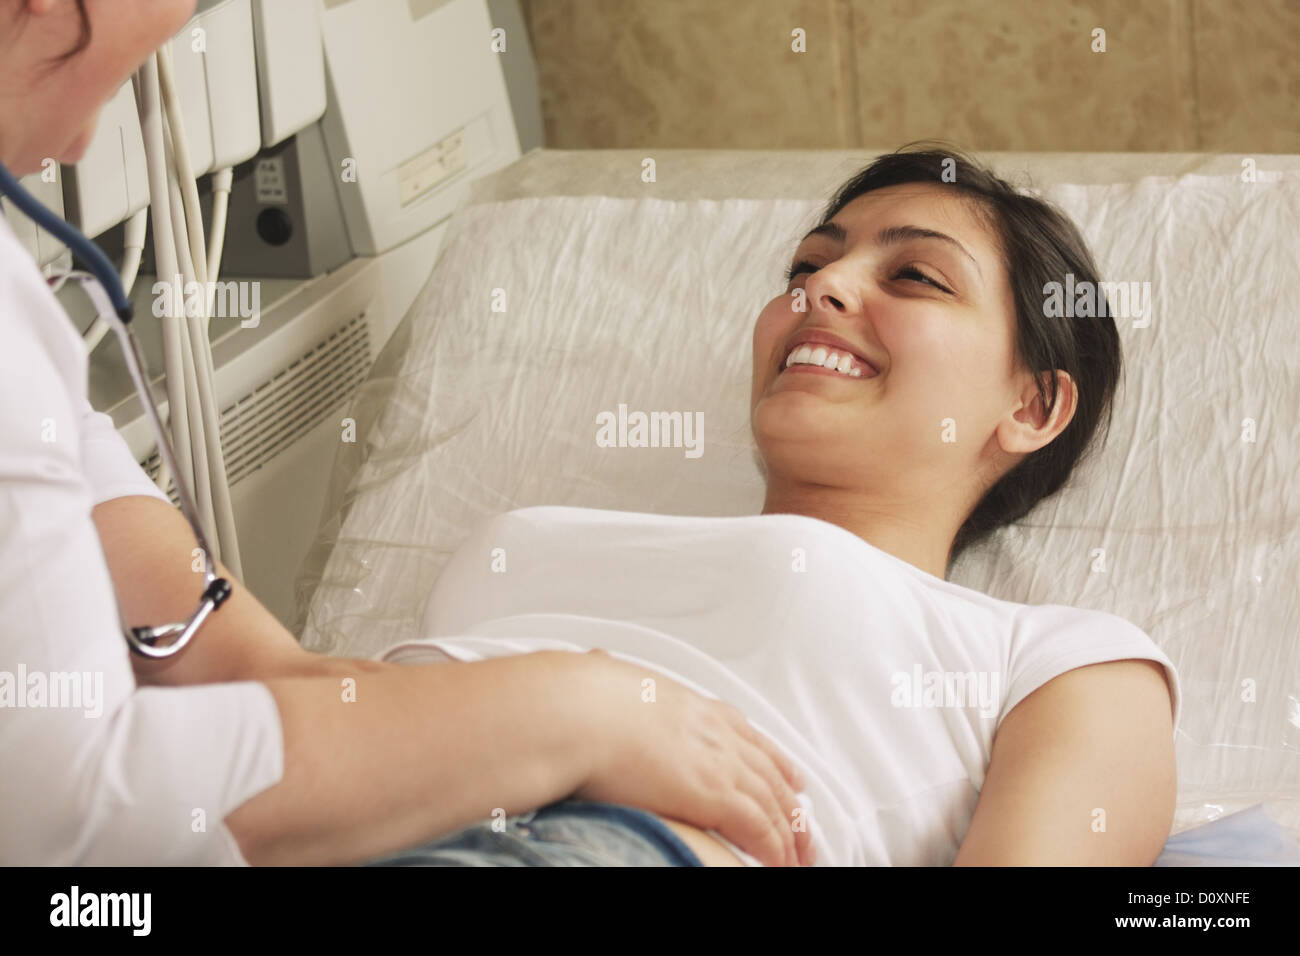 Smiling patient on couch - Stock Image